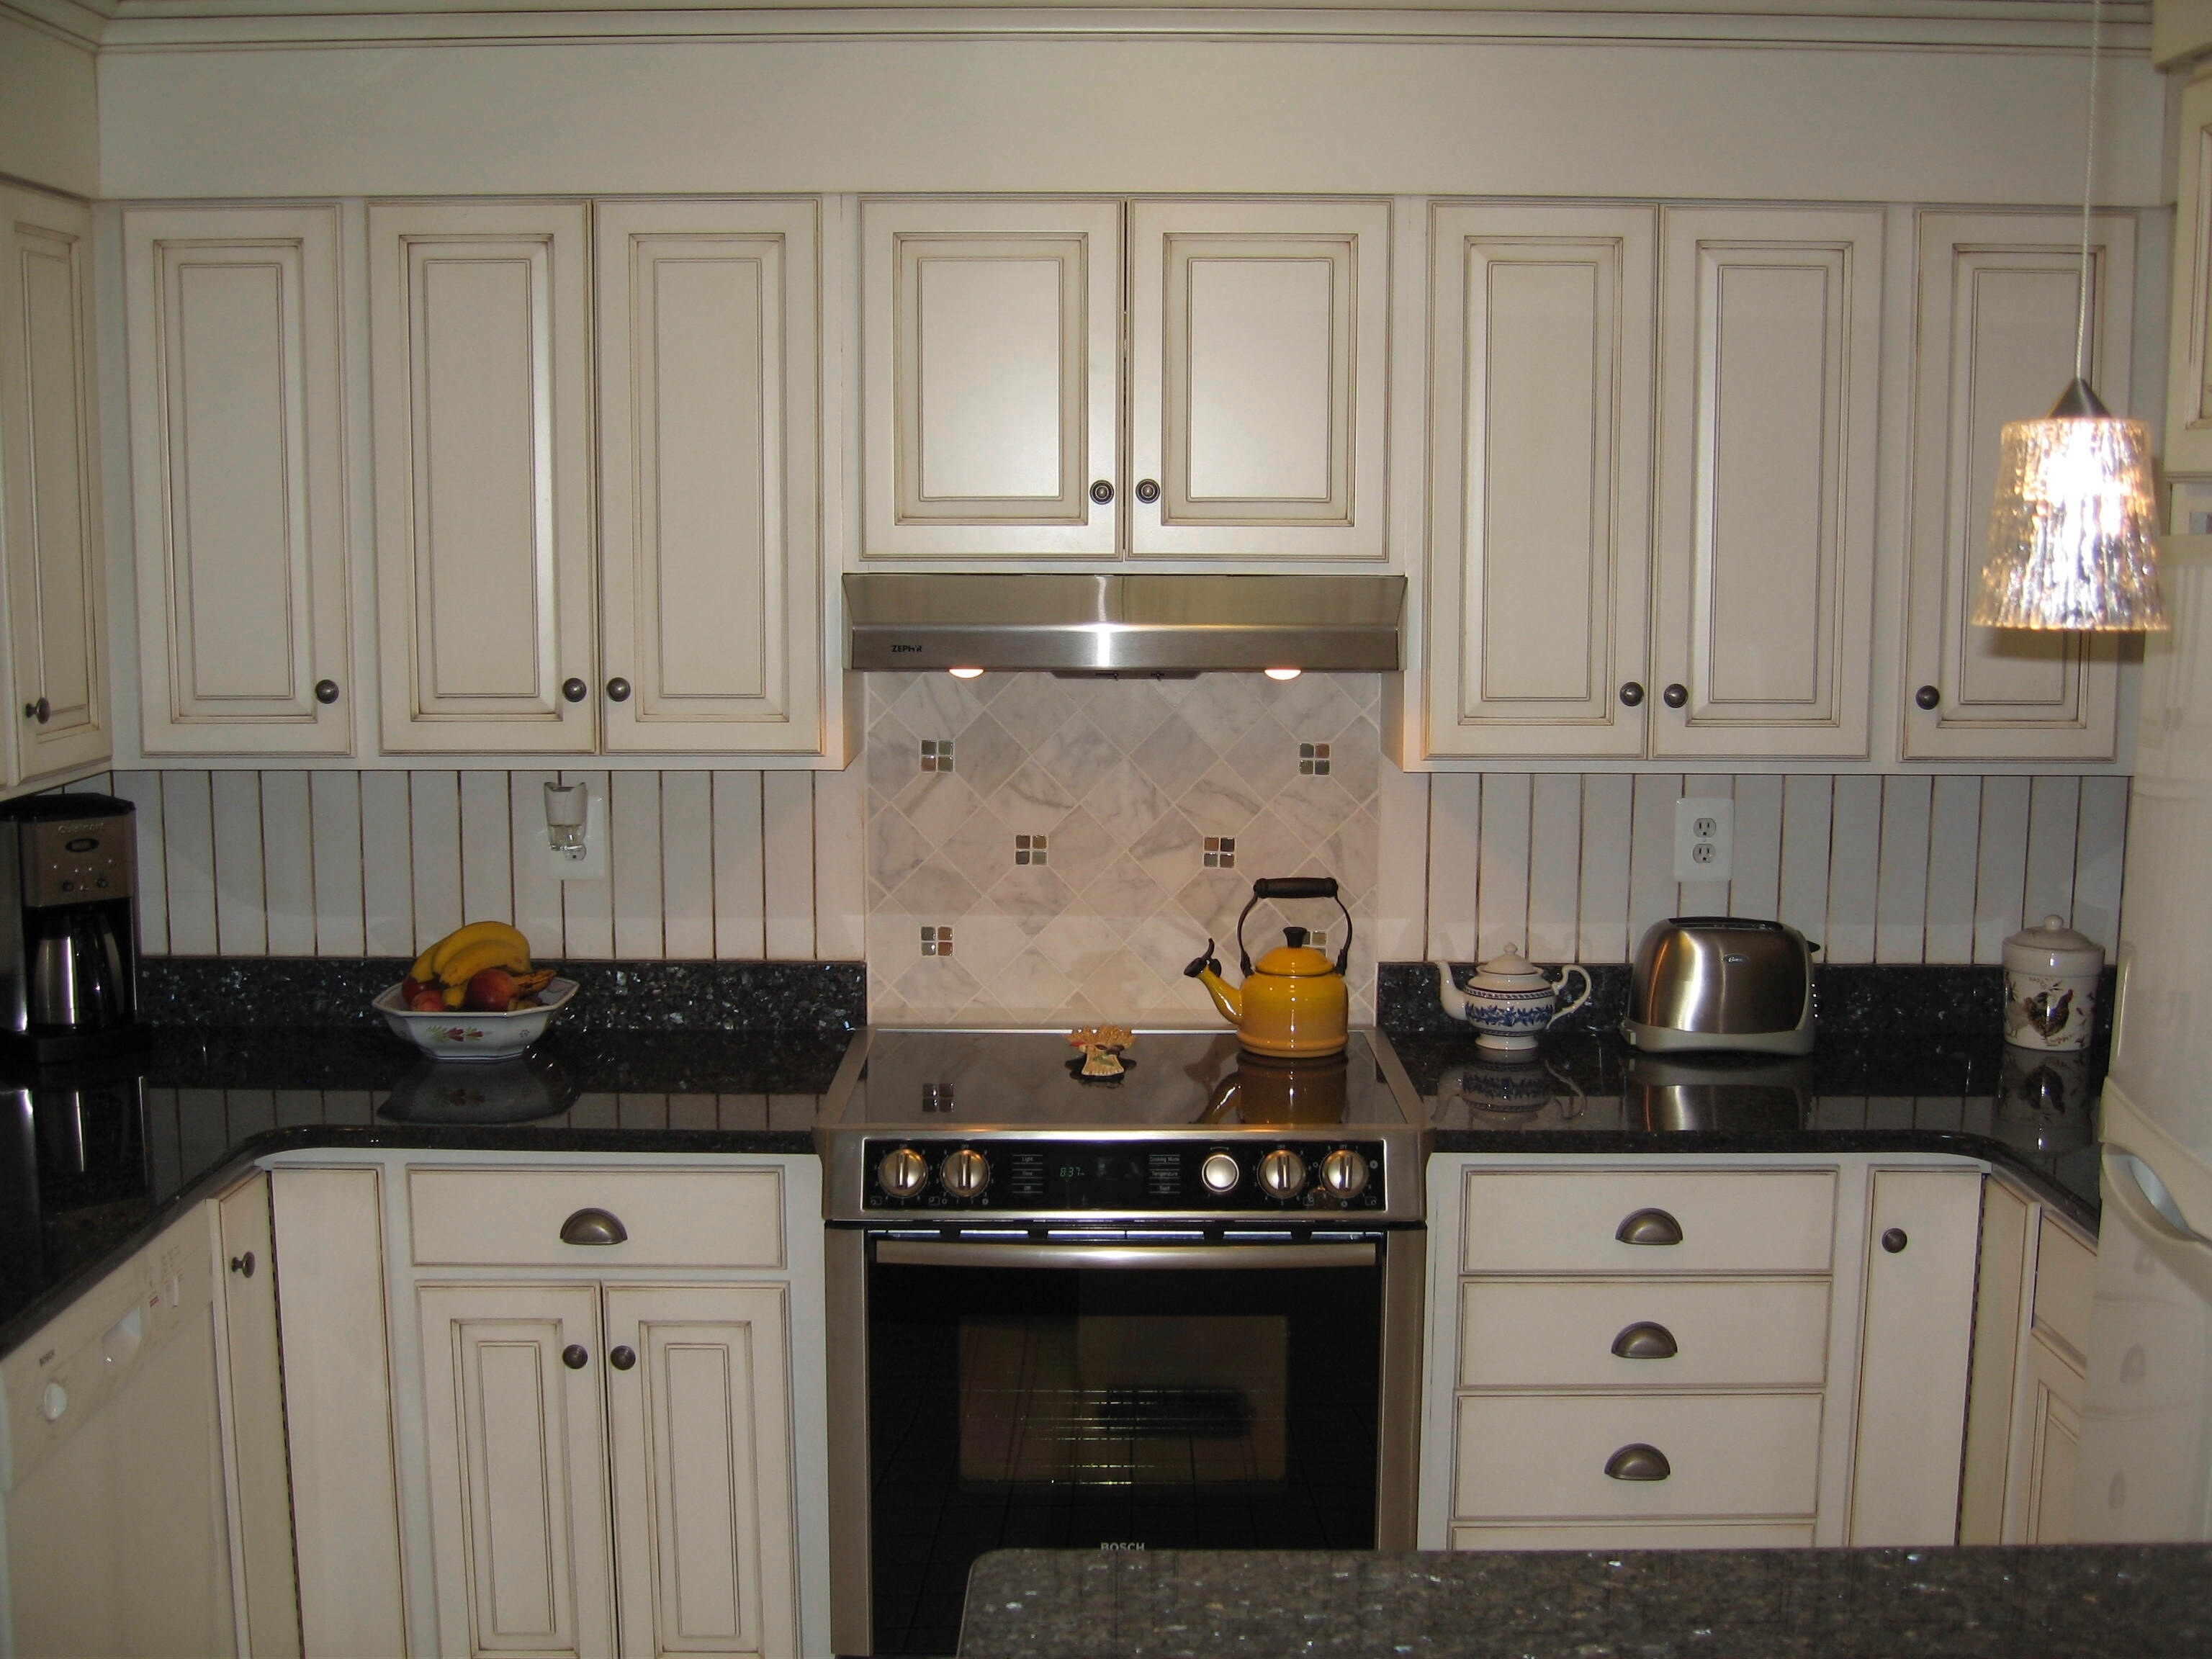 New Fronts For Kitchen Cabinets